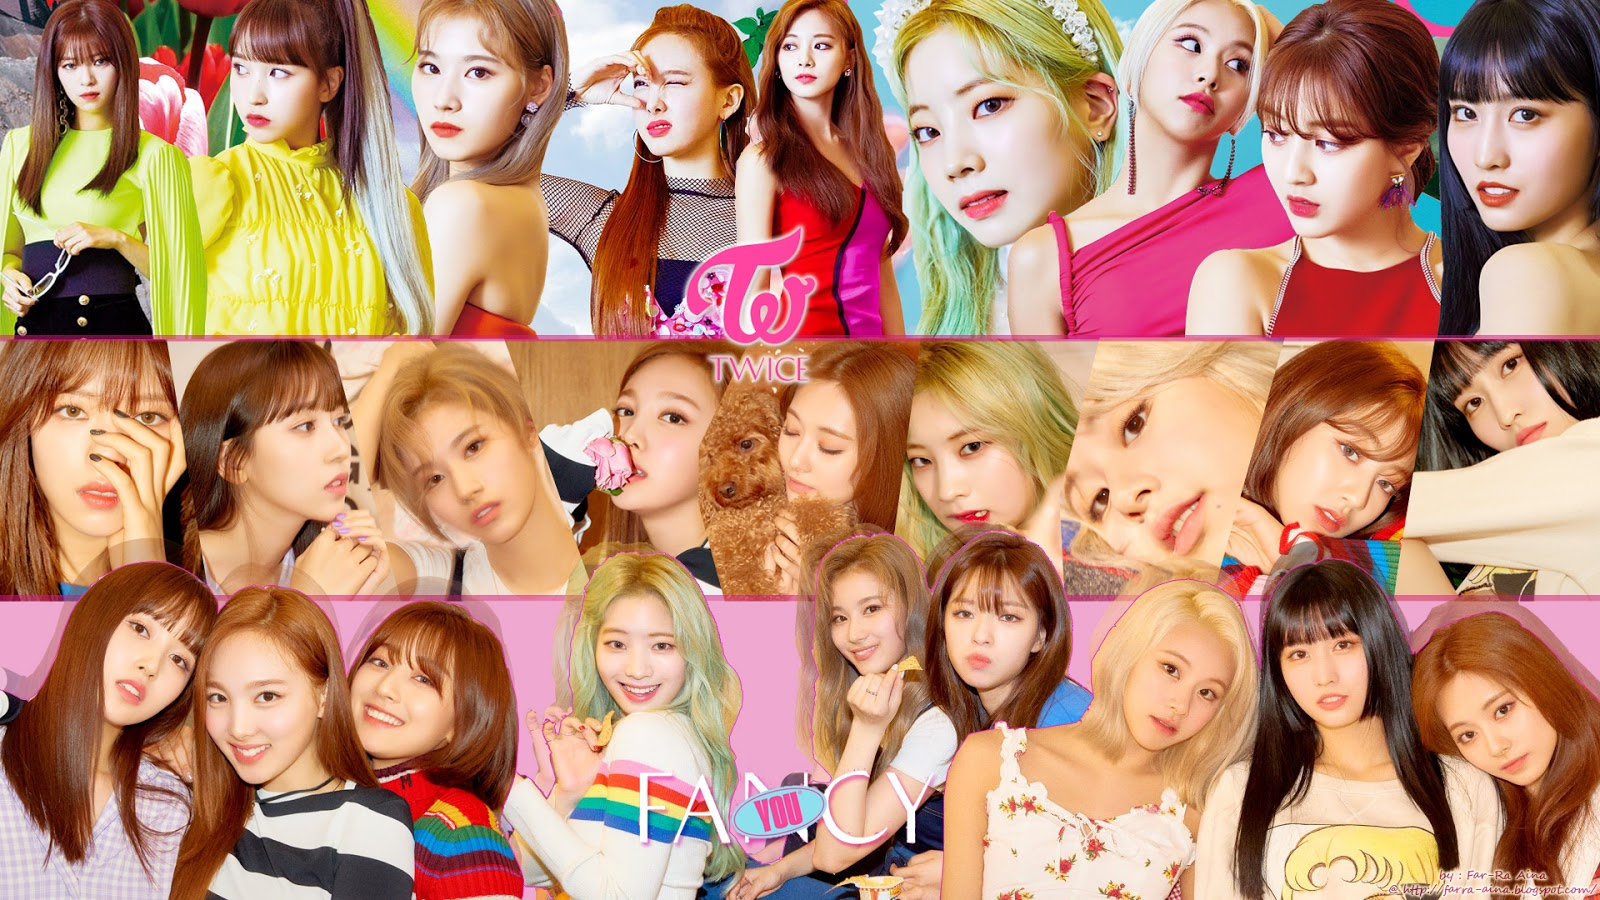 Twice Fancy Wallpaper Pc Twice Fancy You Wallpaper Hd 1600x900 Download Hd Wallpaper Wallpapertip